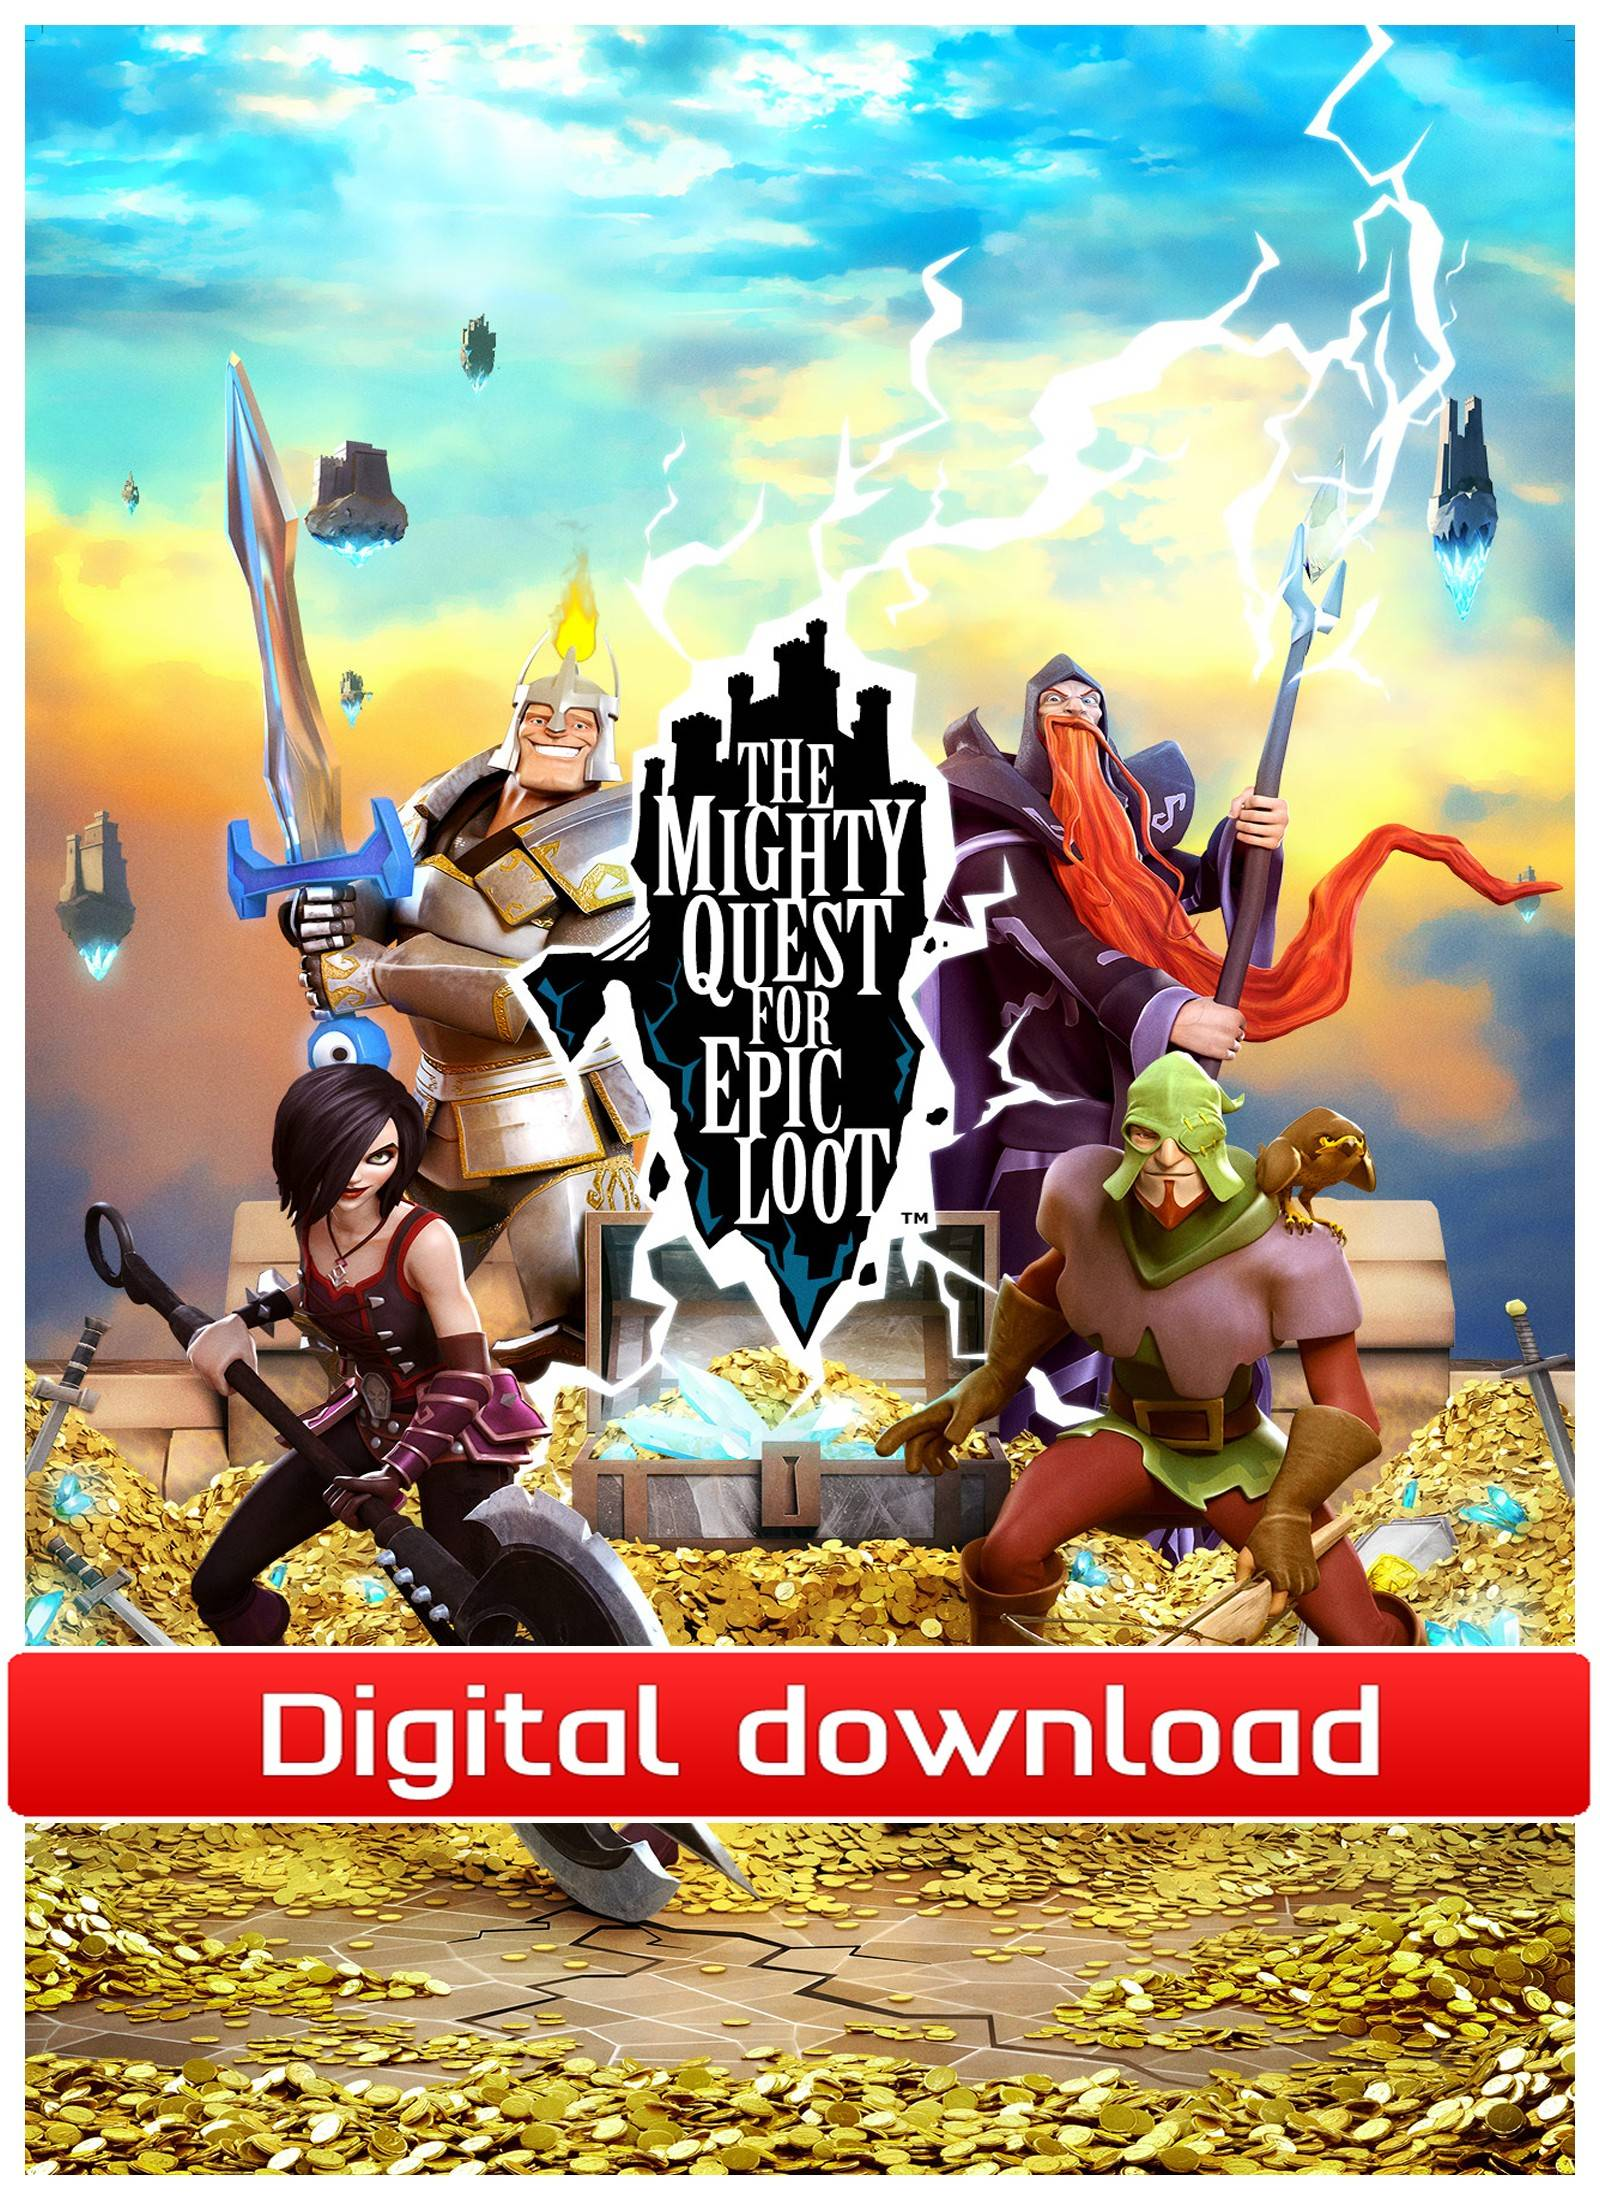 Ubisoft The Mighty Quest for Epic Loot -Trio Combo Pack (Downl)